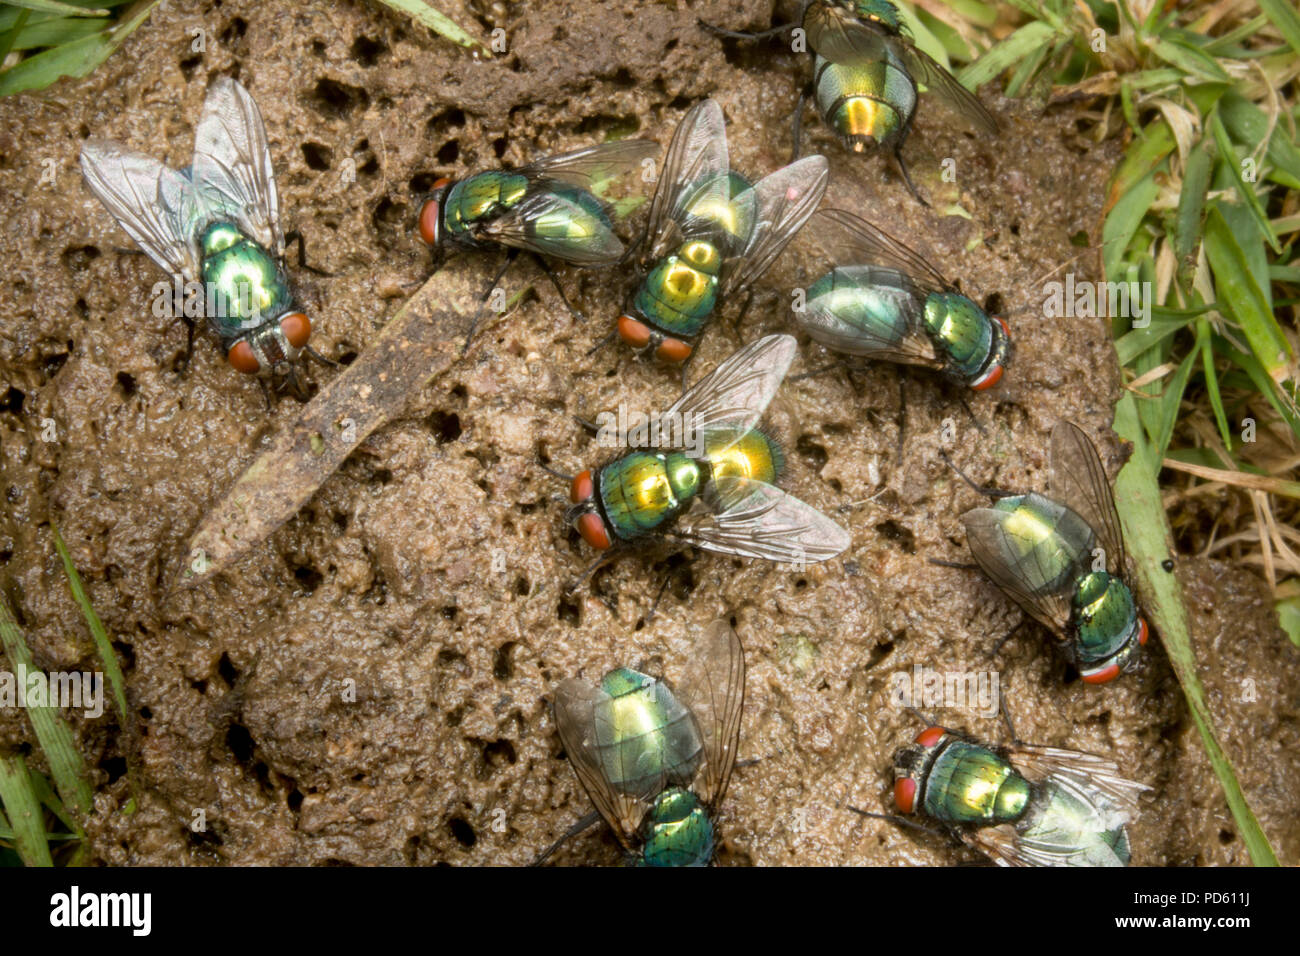 Green-bottle flies attracted to fox feaces. - Stock Image